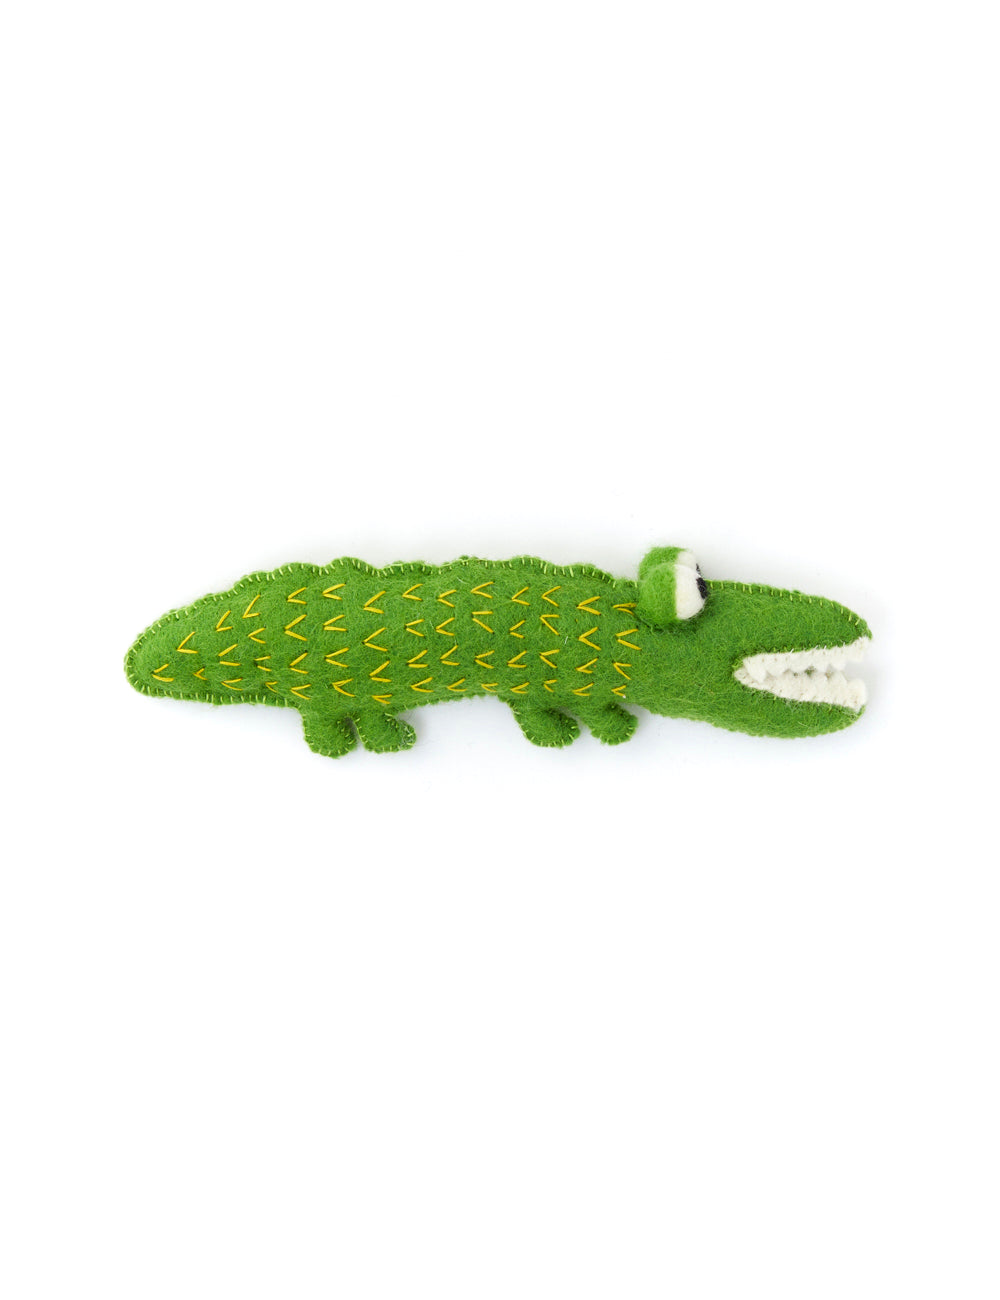 Alligator Dog Toy | Green